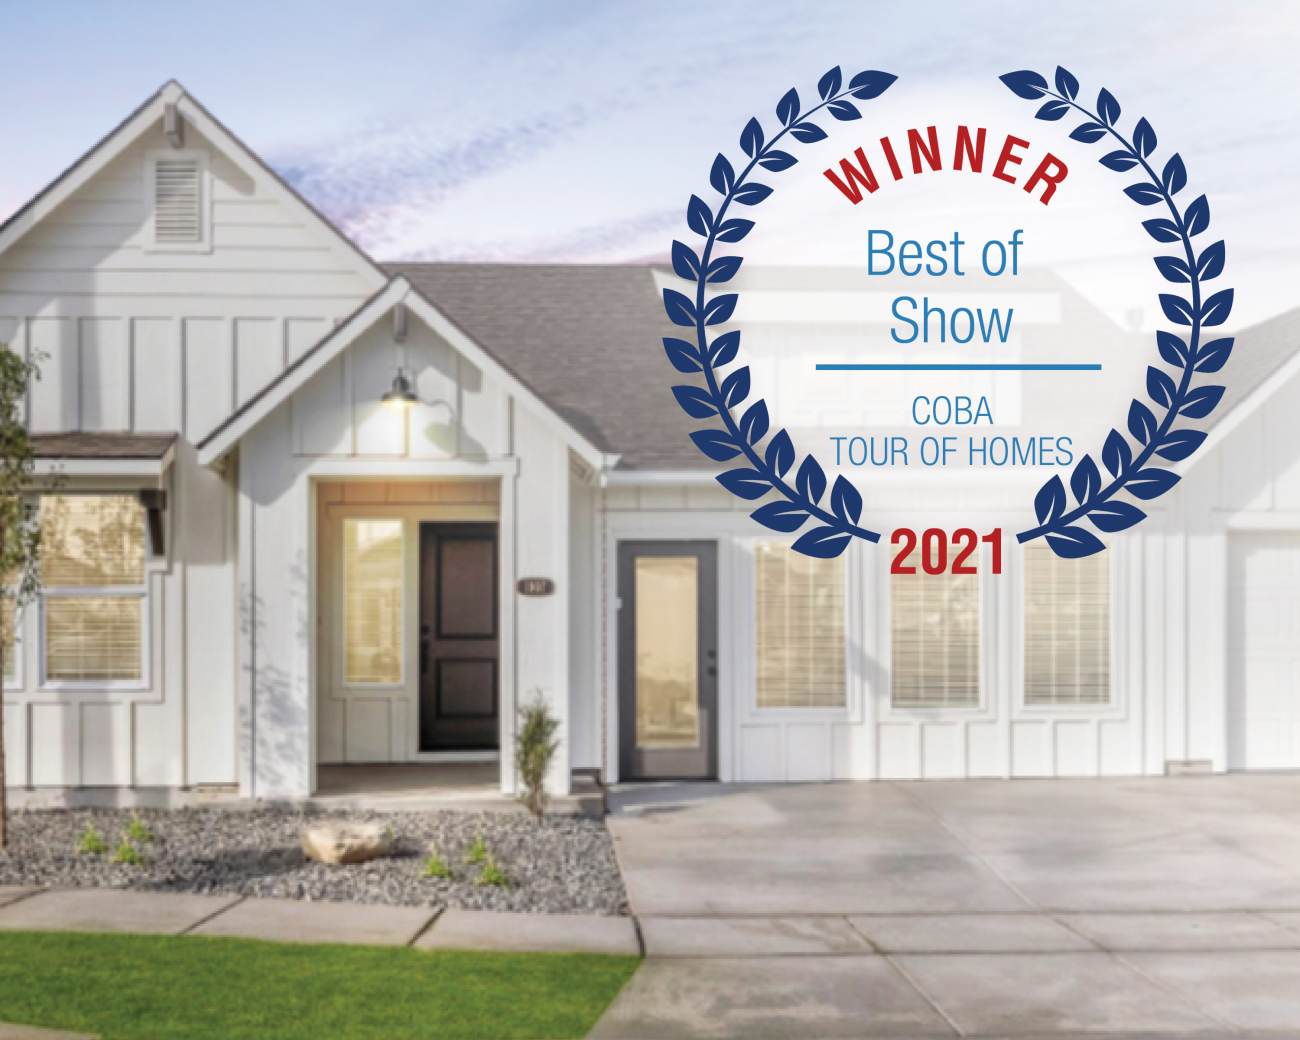 Winner Award for Best in Show by COBA